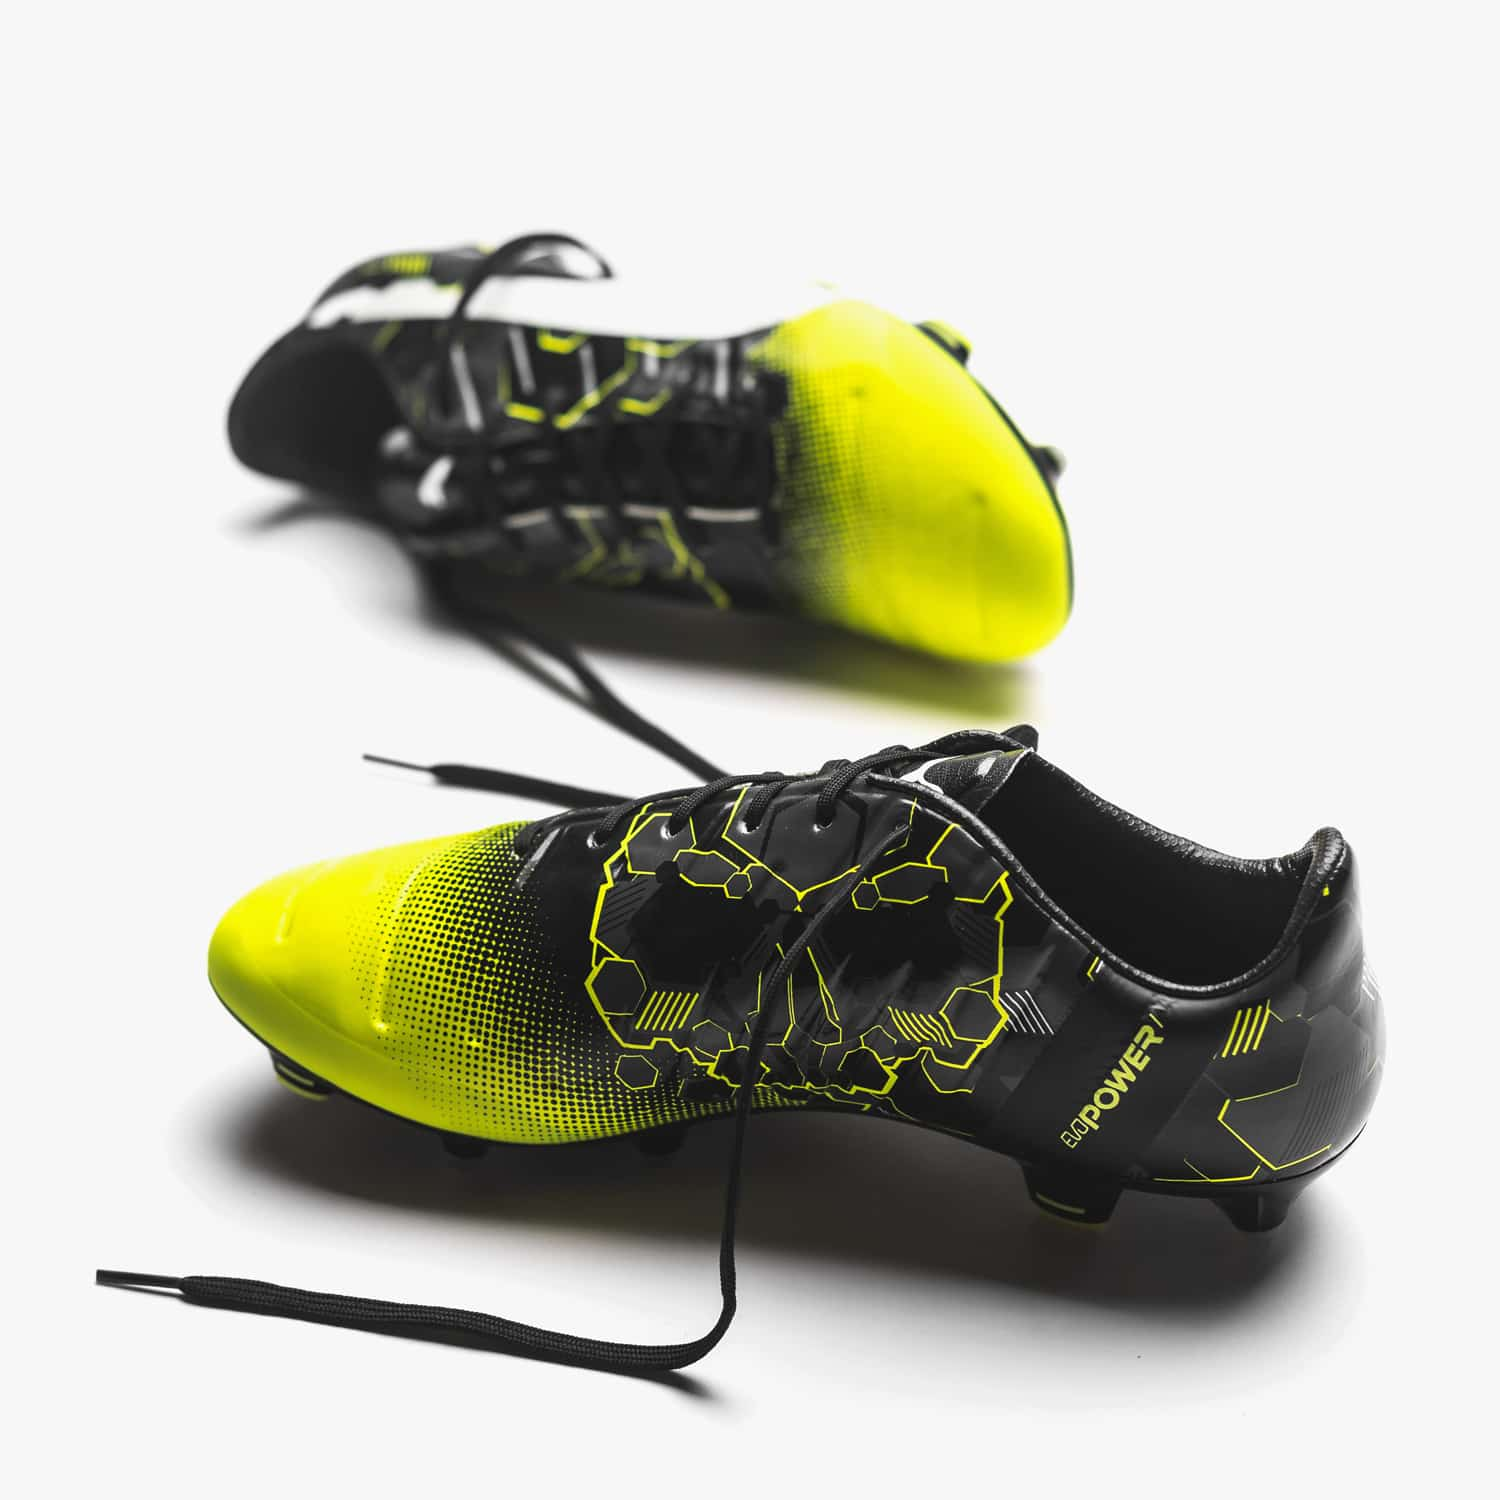 chaussures-football-puma-evopower-1-3-graphic-img6